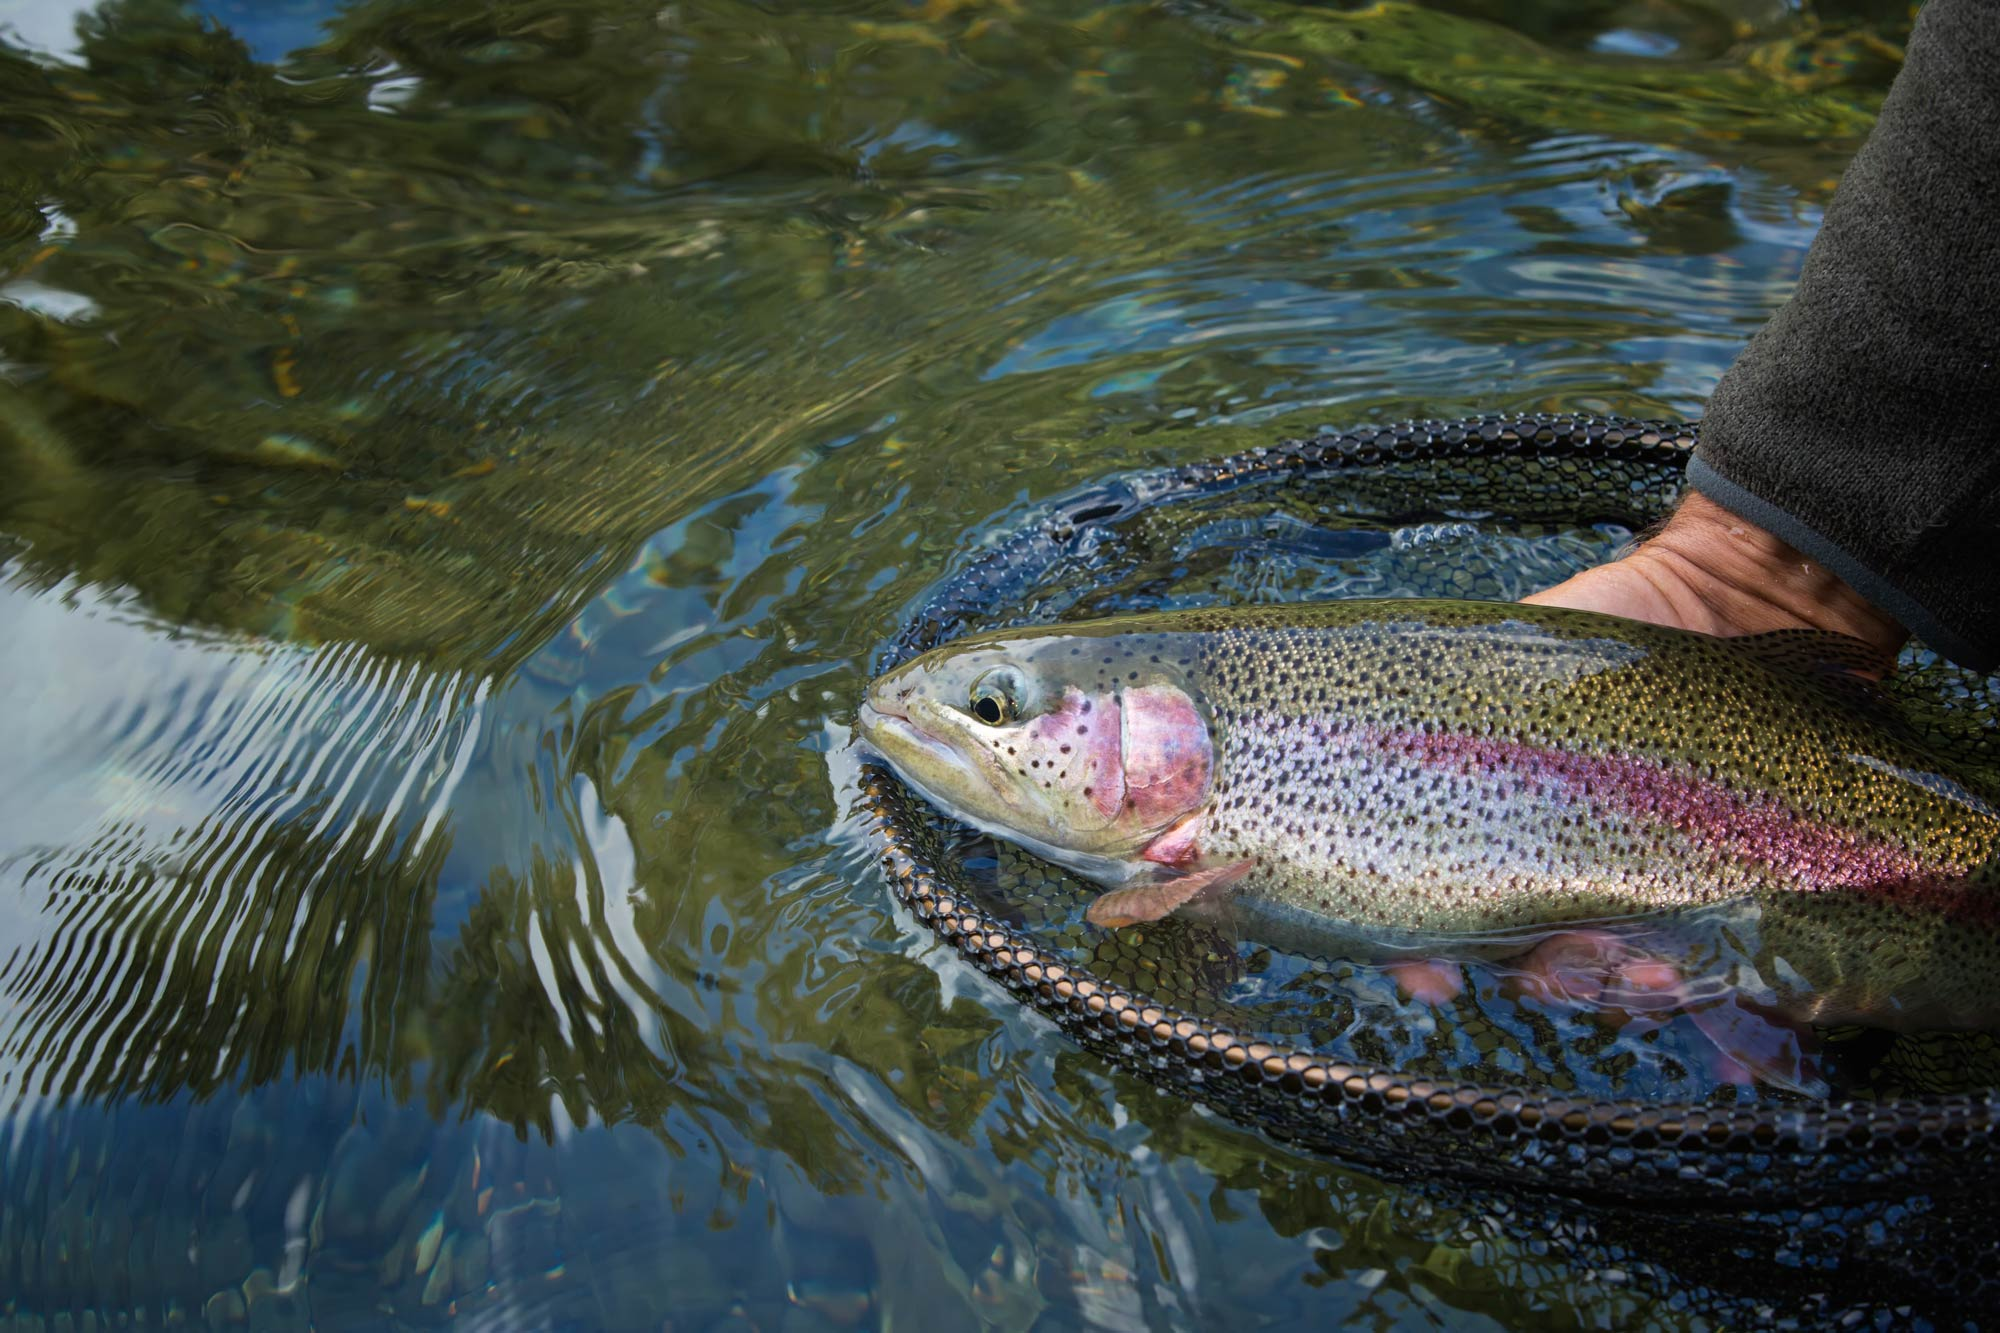 A fisherman holding a Rainbow Trout and pulling it out of the water with a net